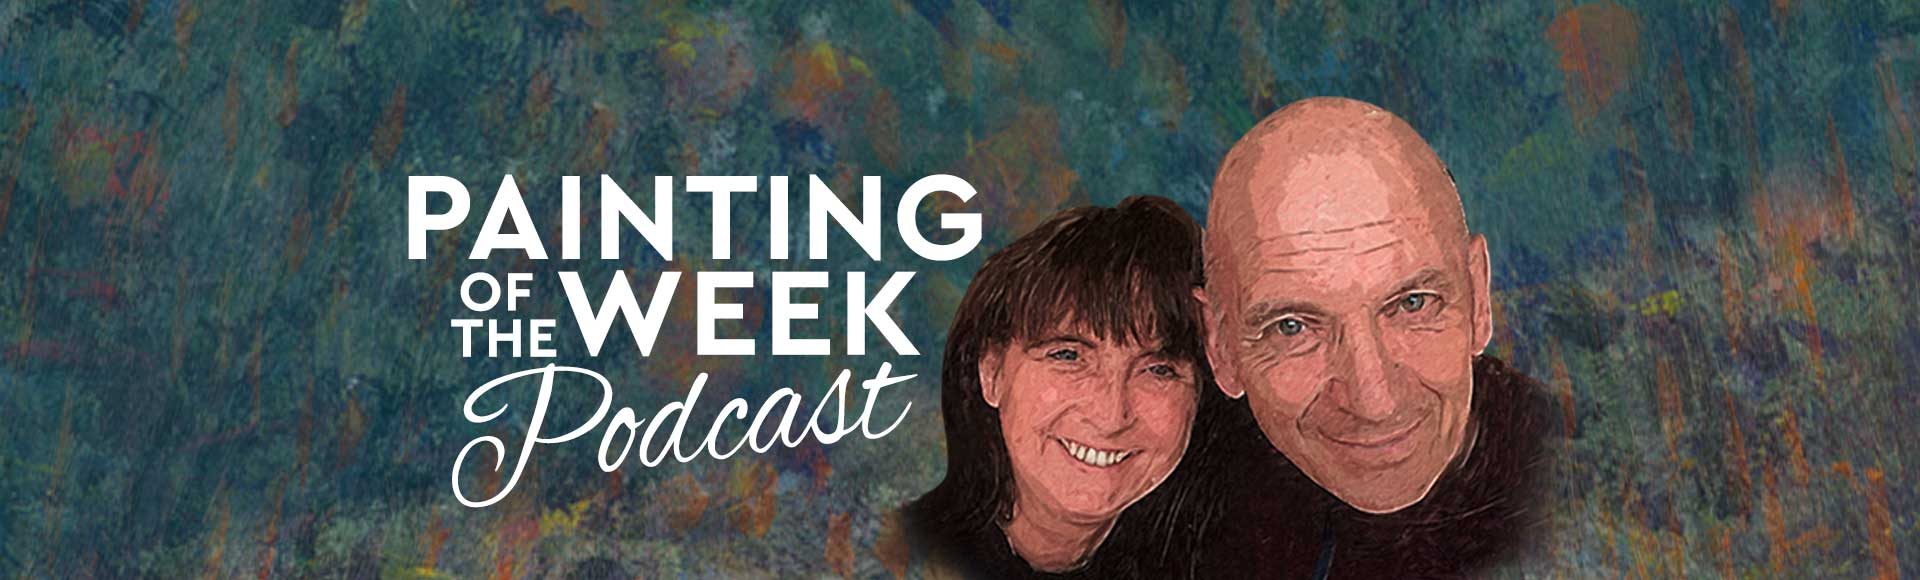 Podcast of the week